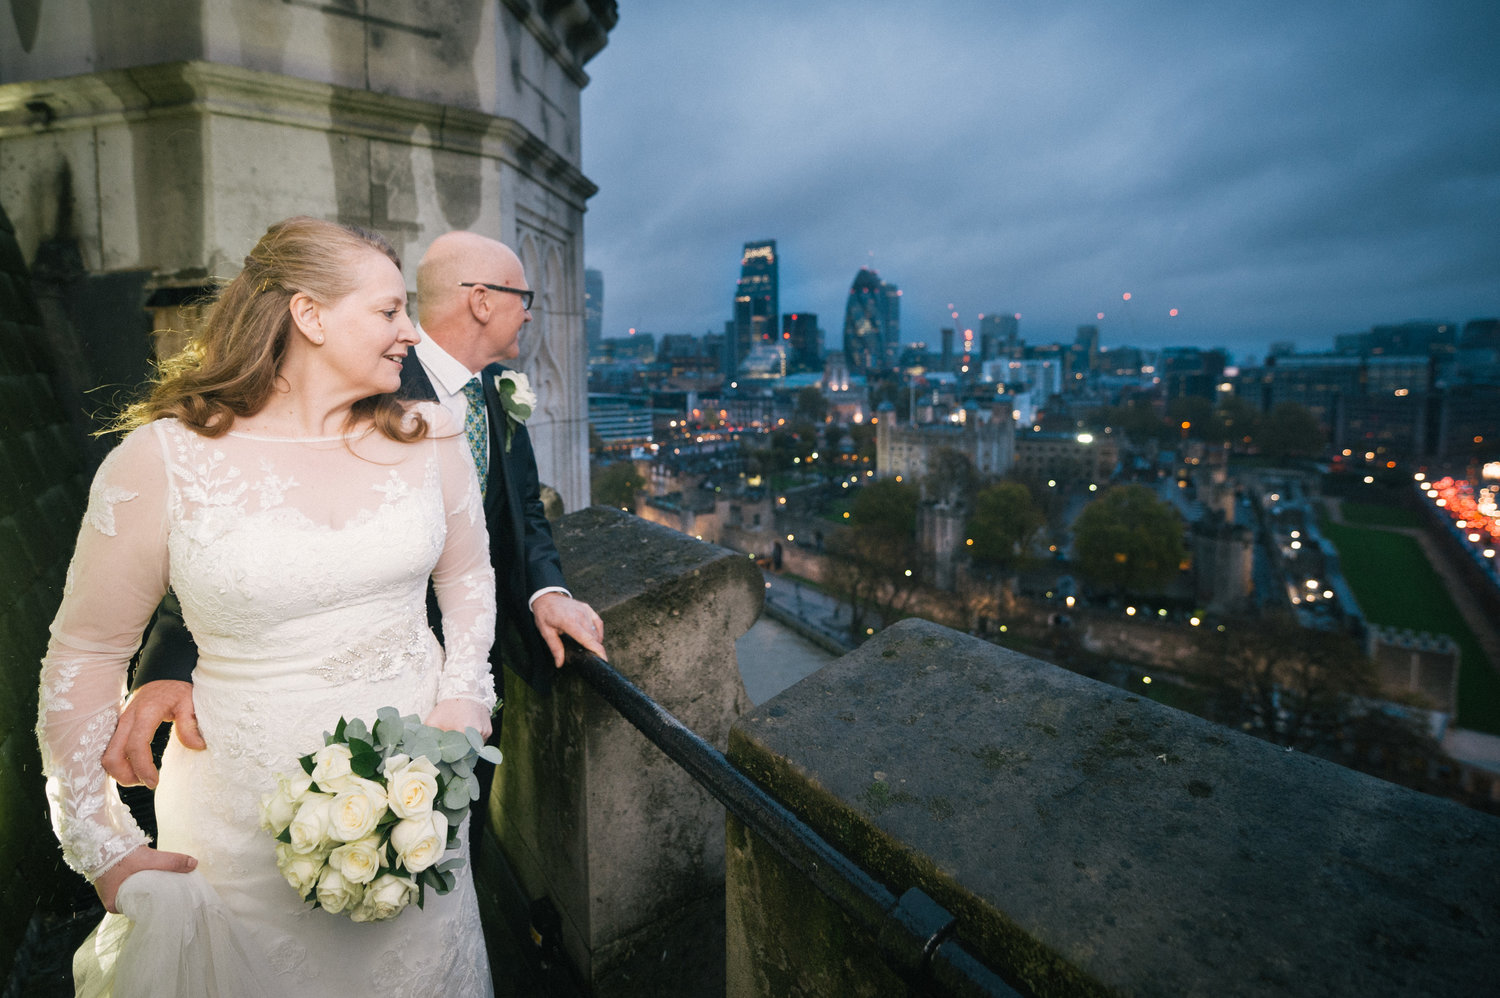 Nottingham Creative Wedding Photographer | Lifestyle | Commercial